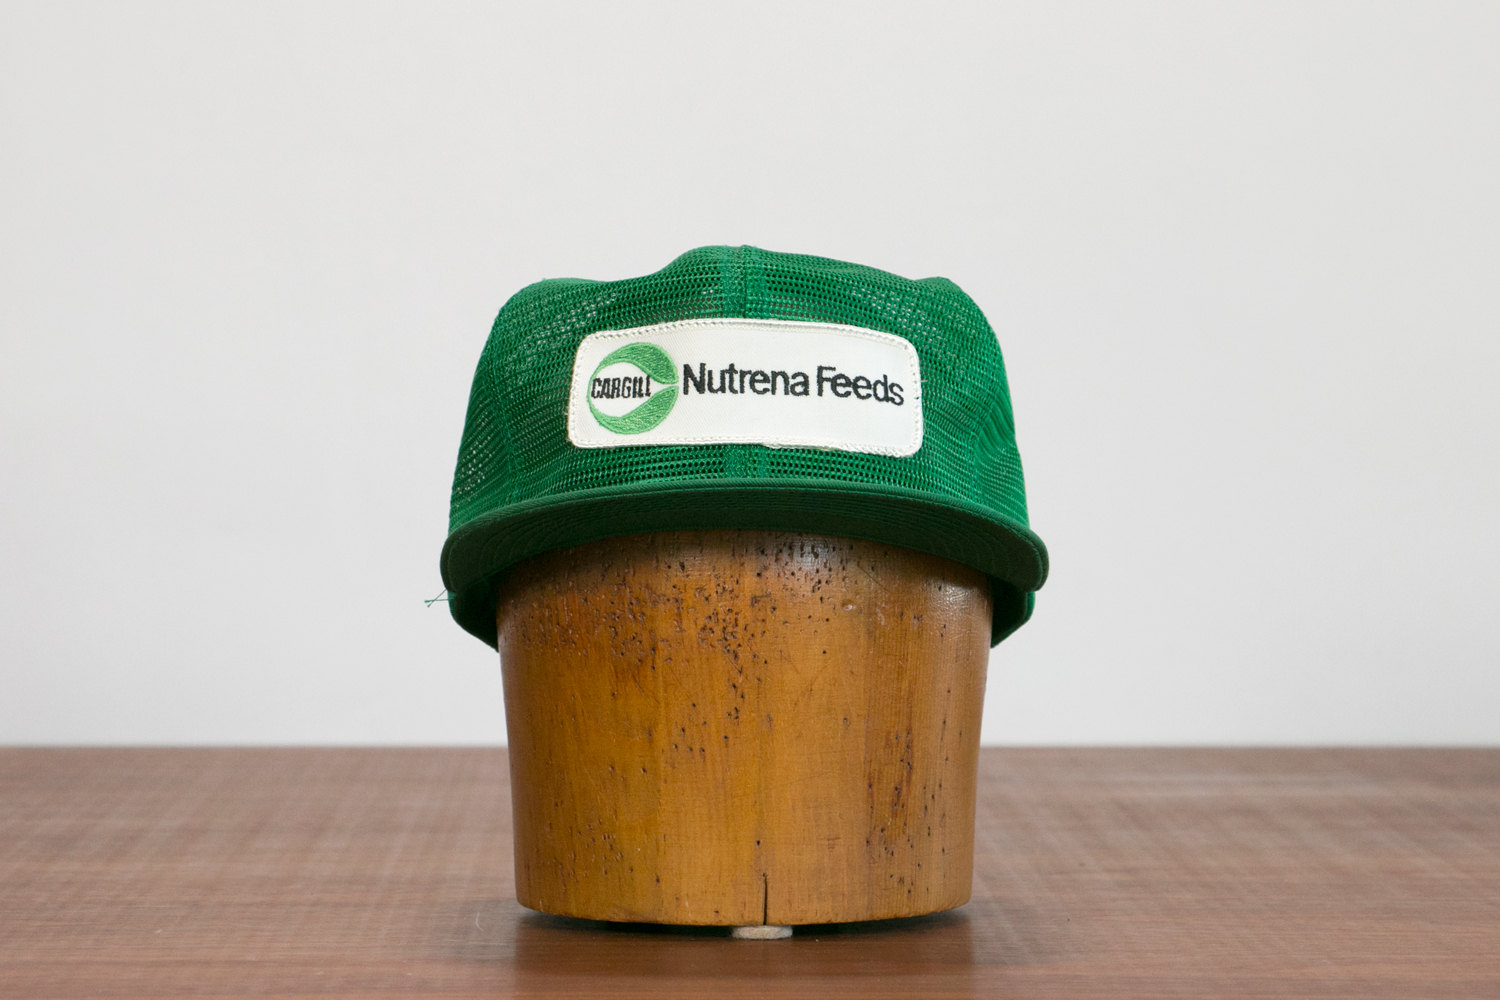 Rare Vintage Green Mesh Nutrena Feeds Trucker Cap // 1960's Wisconsin, USA // Farming, Hipster, Indie, Rocker, Punk, Country